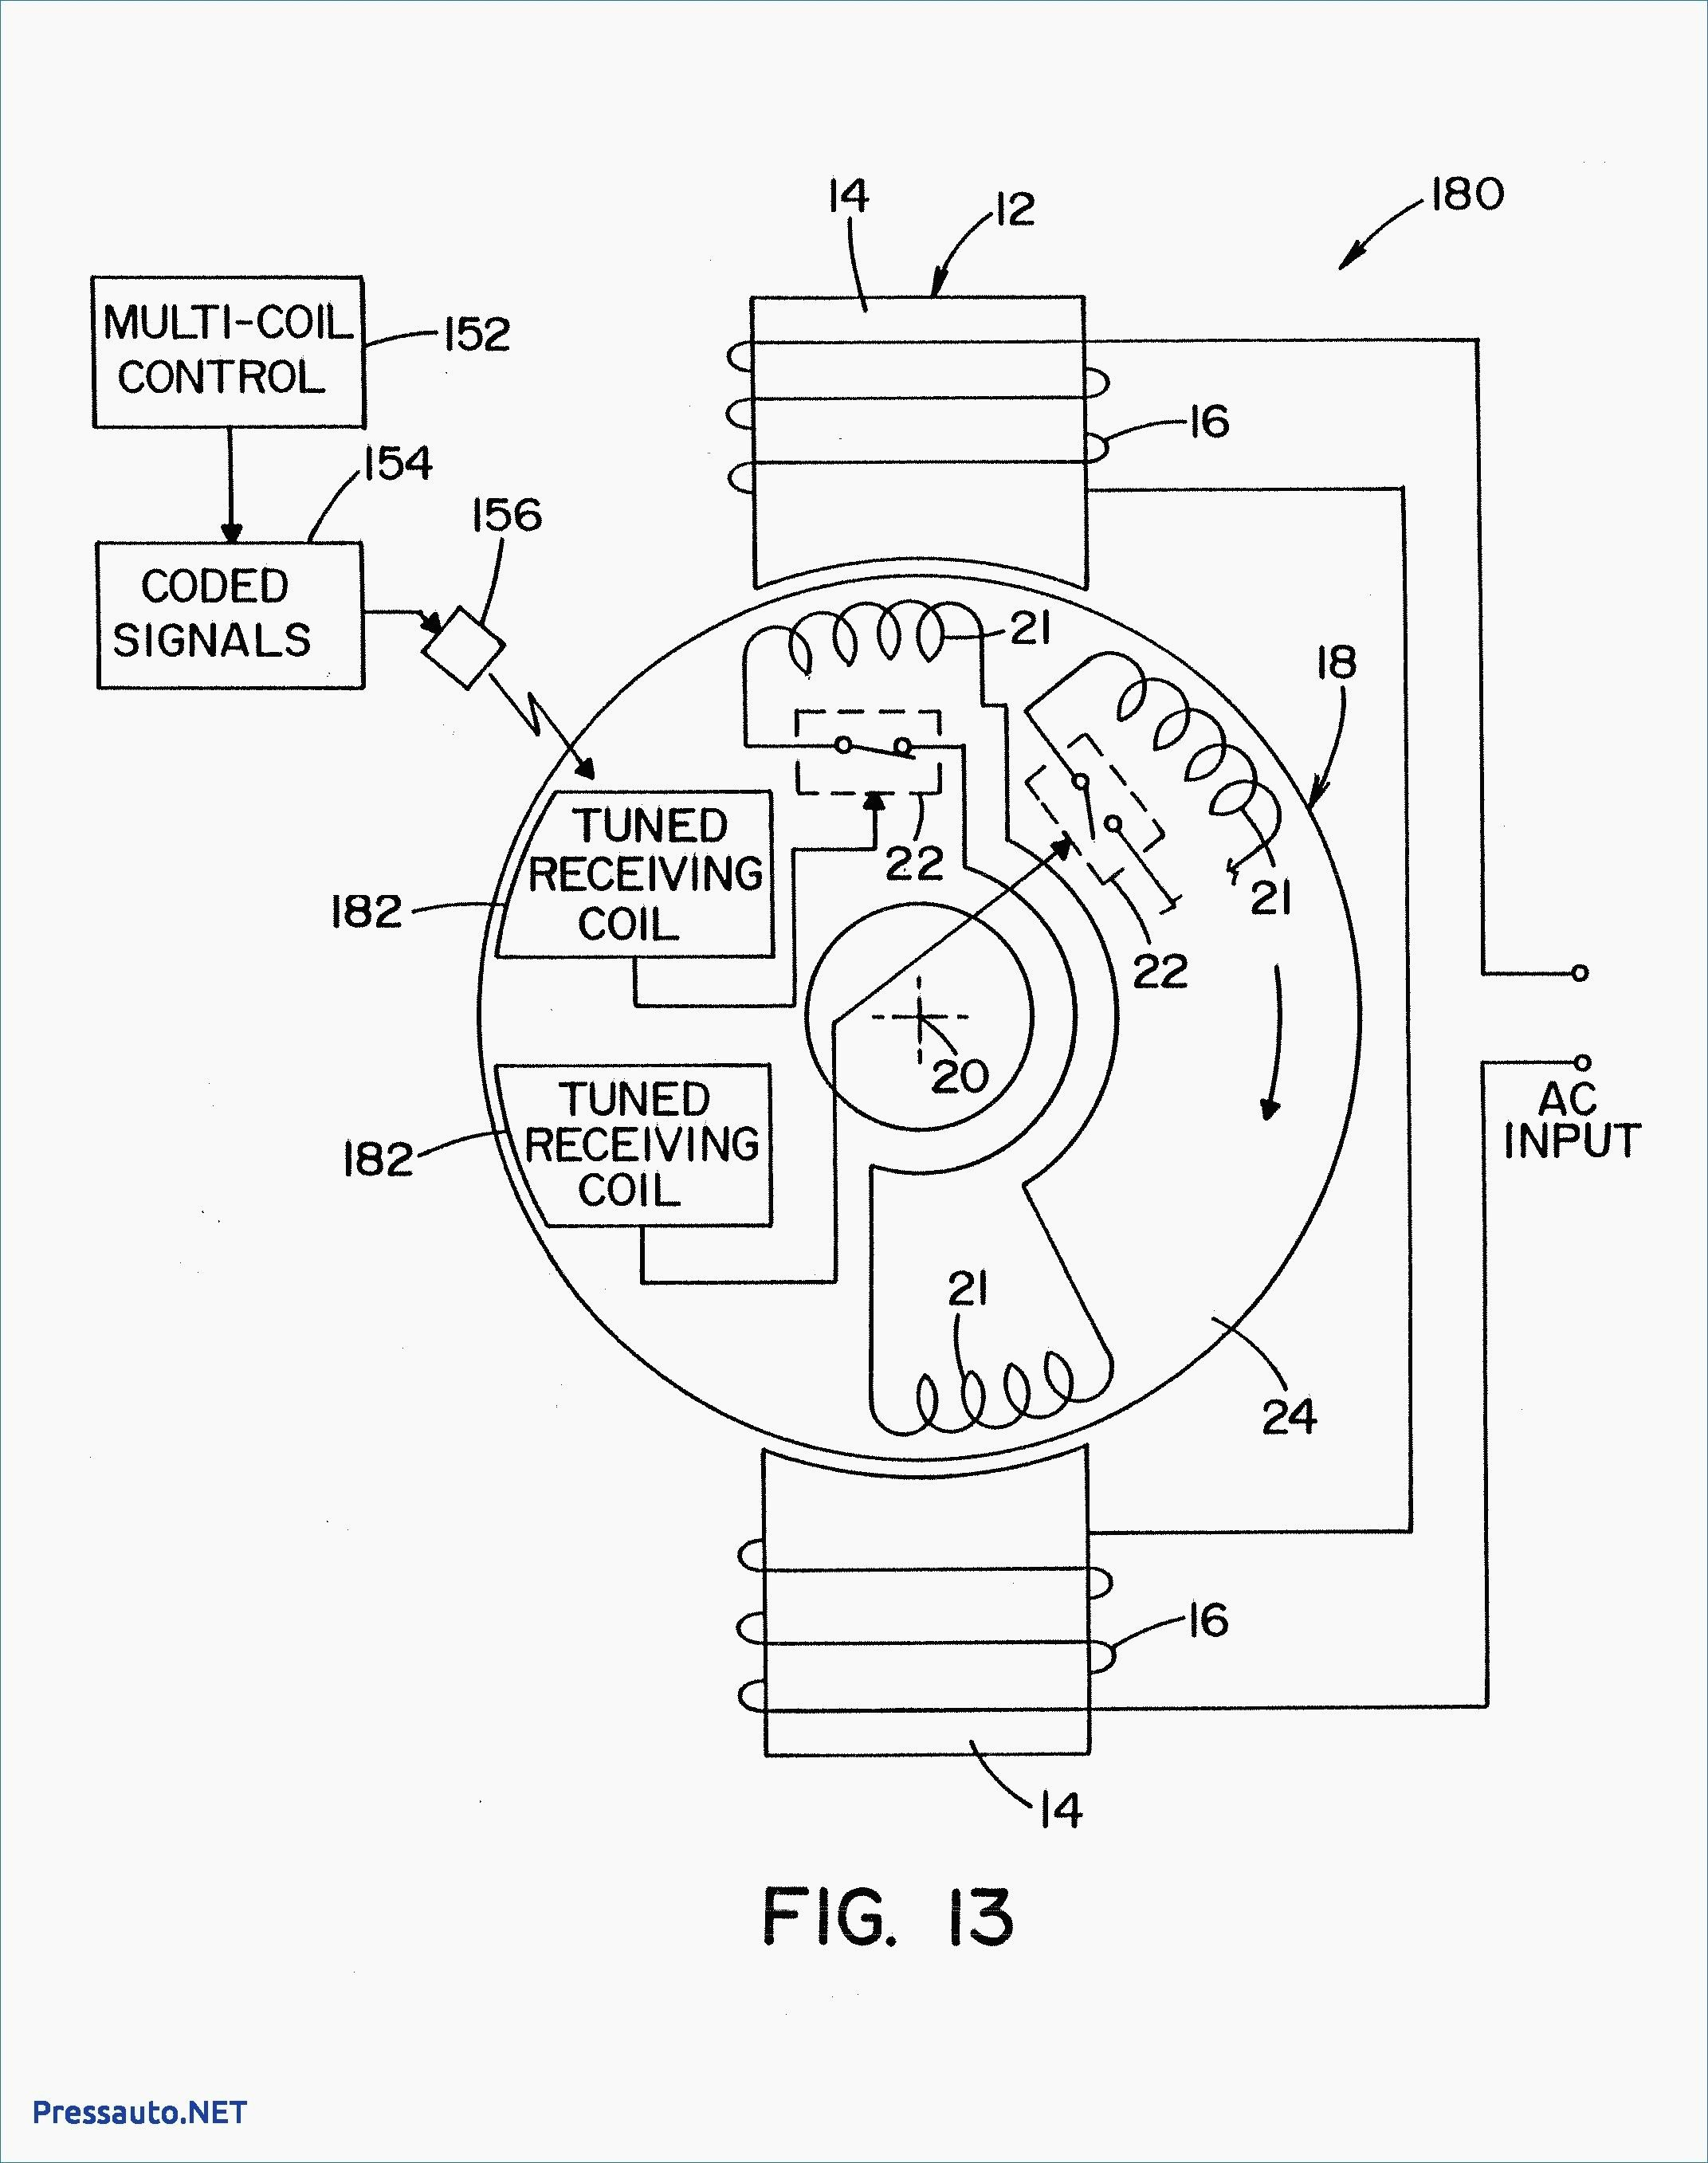 [NRIO_4796]   Unique Wiring Diagram Of Electric Desk Fan #diagram #diagramsample  #diagramtemplate #wiringdiagram #dia… | Ceiling fan wiring, Ceiling fan  switch, Ceiling fan parts | Vintage Electric Fan Wiring Diagram Air |  | Pinterest